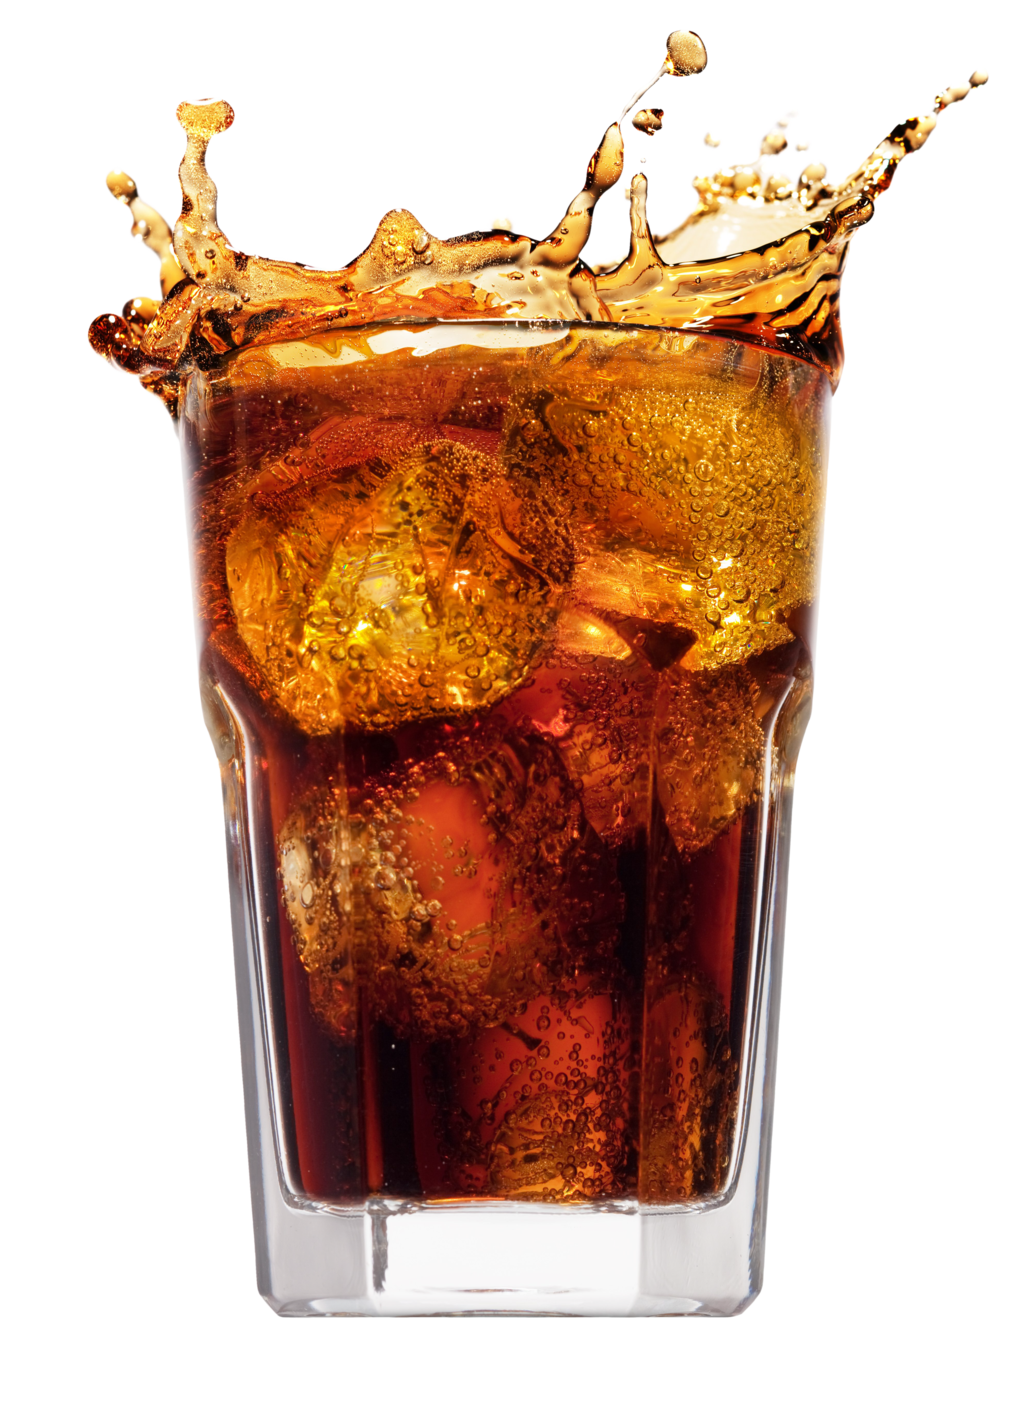 Coke cup png. Download coca cola picture